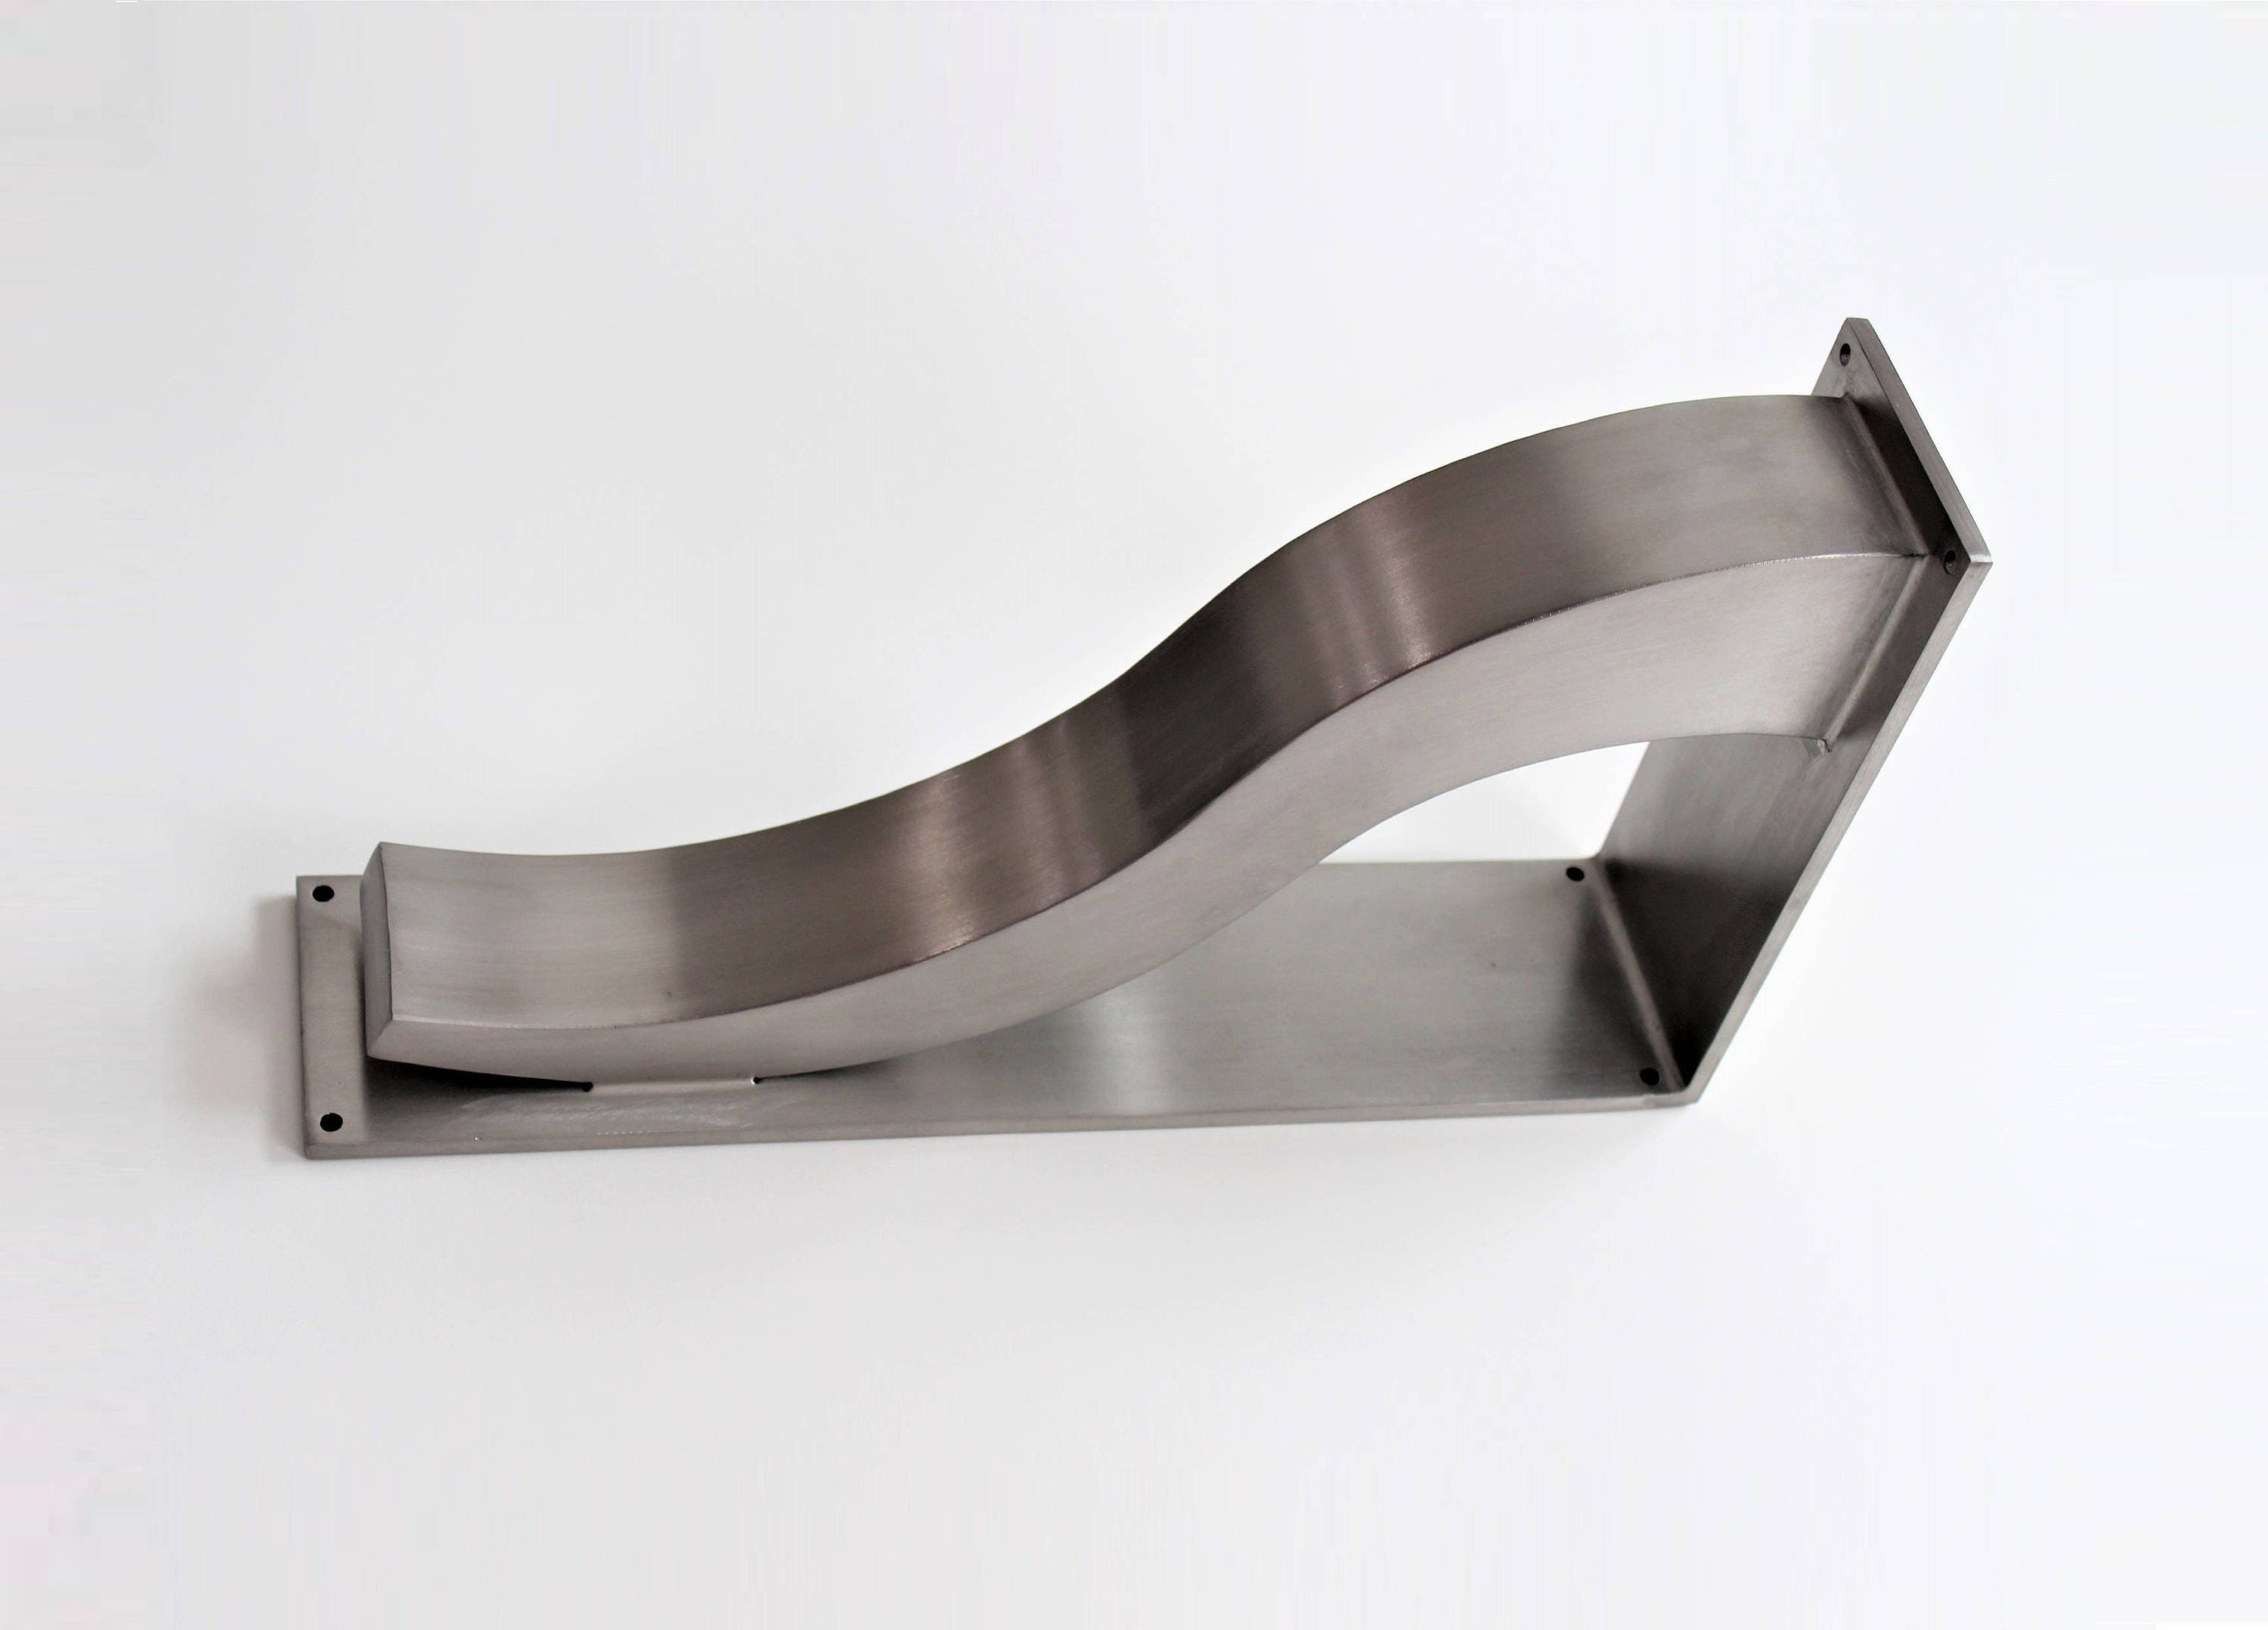 Architectural Support Brackets : Stainless steel countertop support brackets architectural